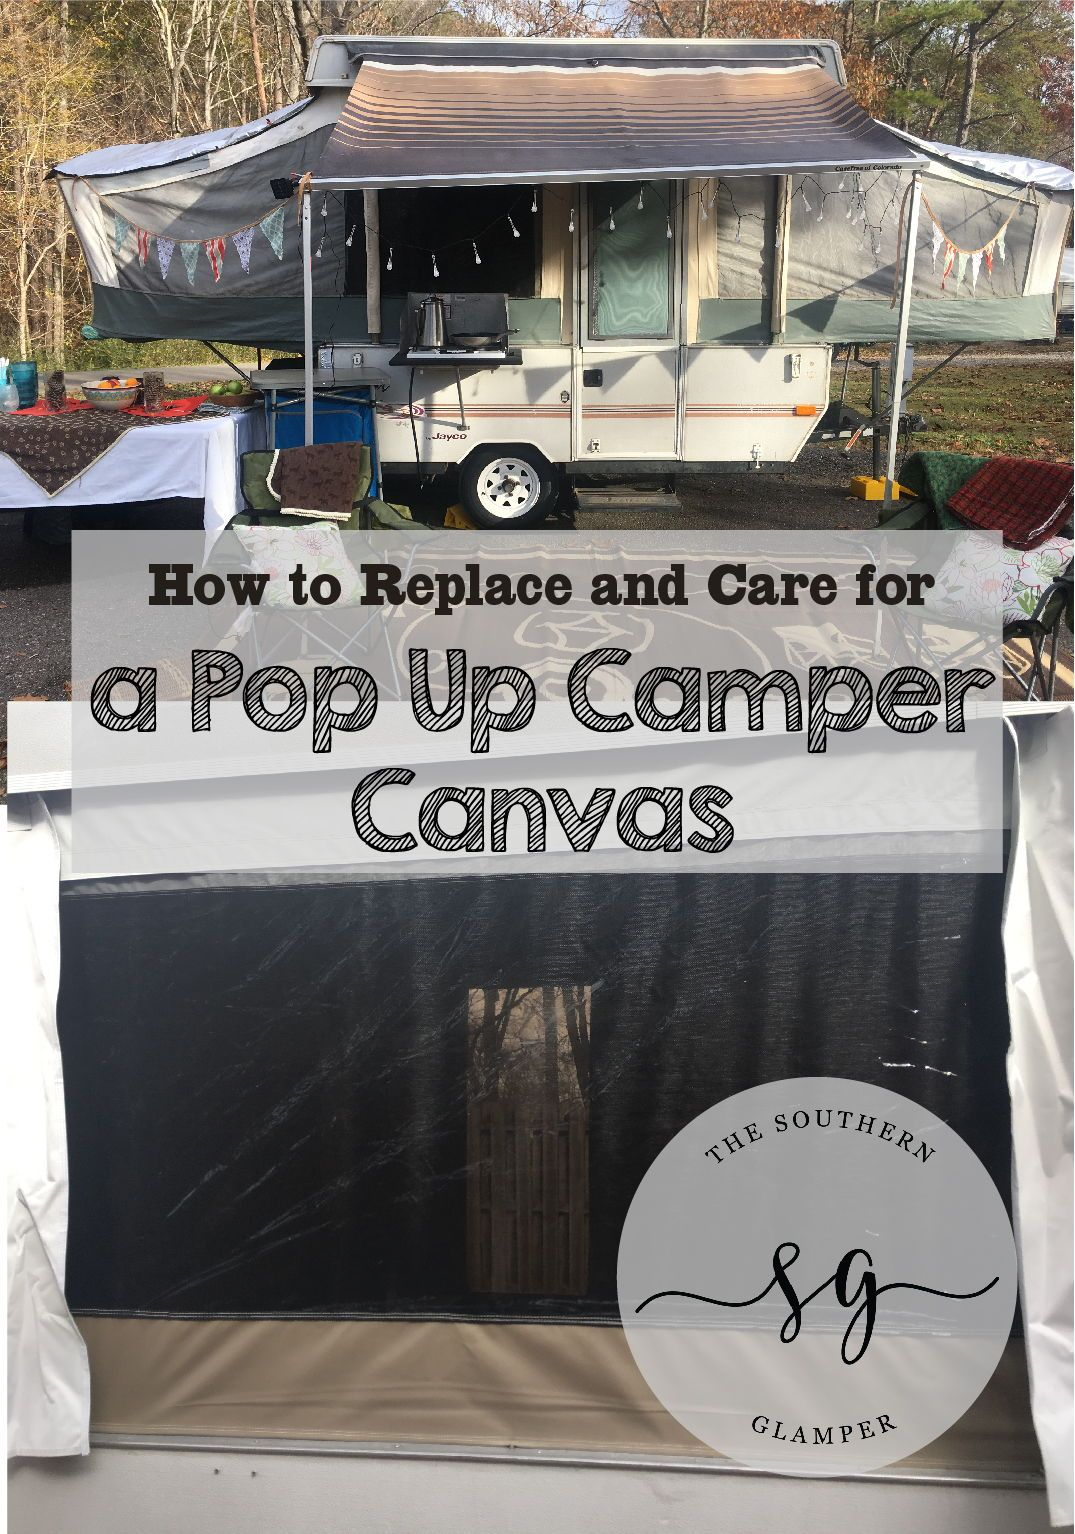 Replacing Your Pop Up Camper Canvas | Pinterest